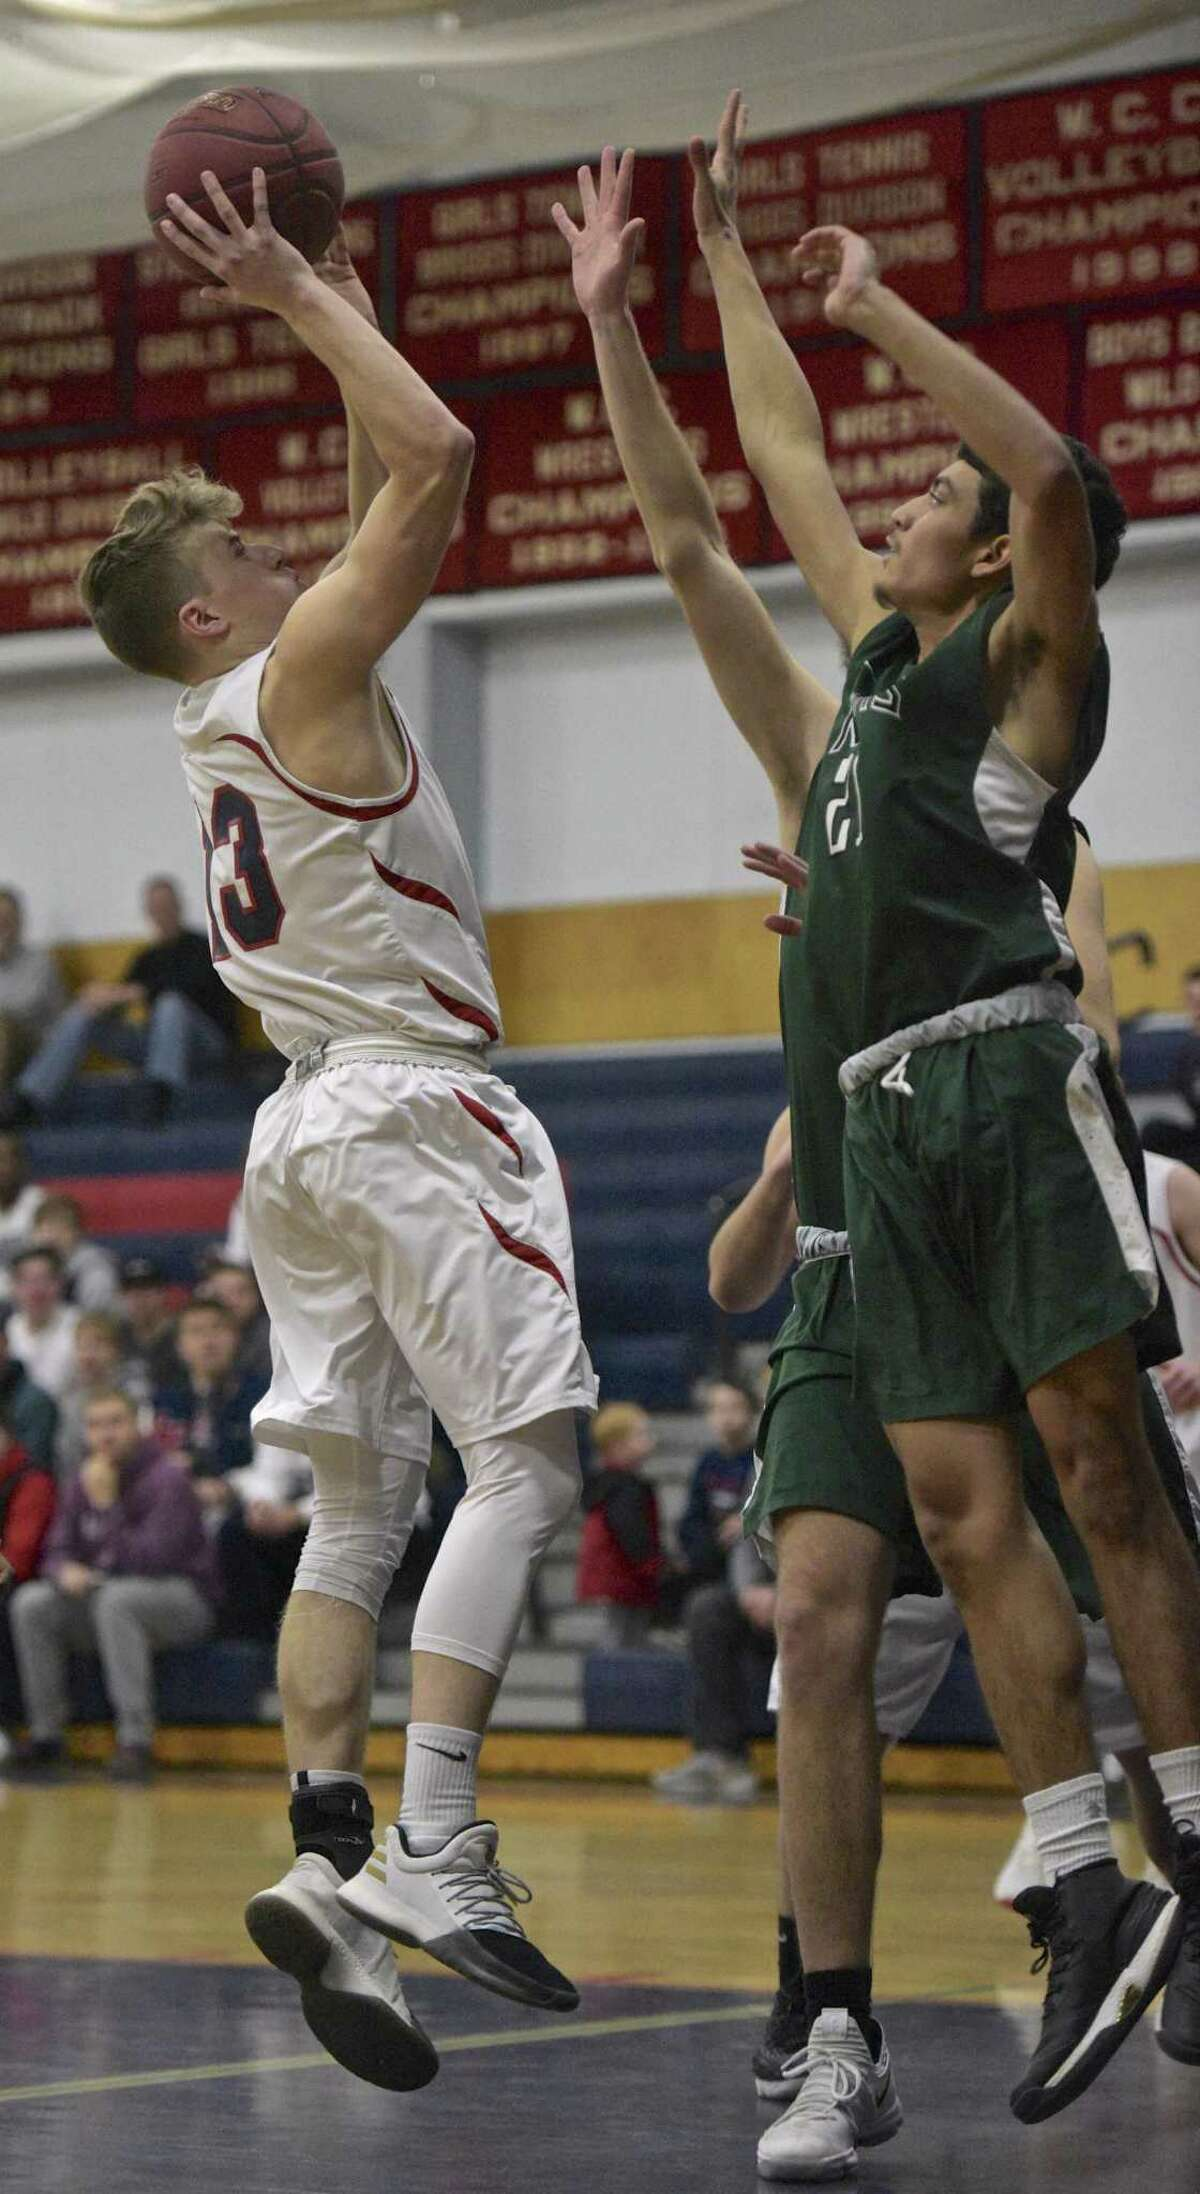 New Fairfield's Sean Jamieson (13) takes a shot over New Milford's Josian Morales (21) in the boys basketball game between New Milford and New Fairfield high schools on Friday night, February 2, 2018, at New Fairfield High School, in New Fairfield, Conn.